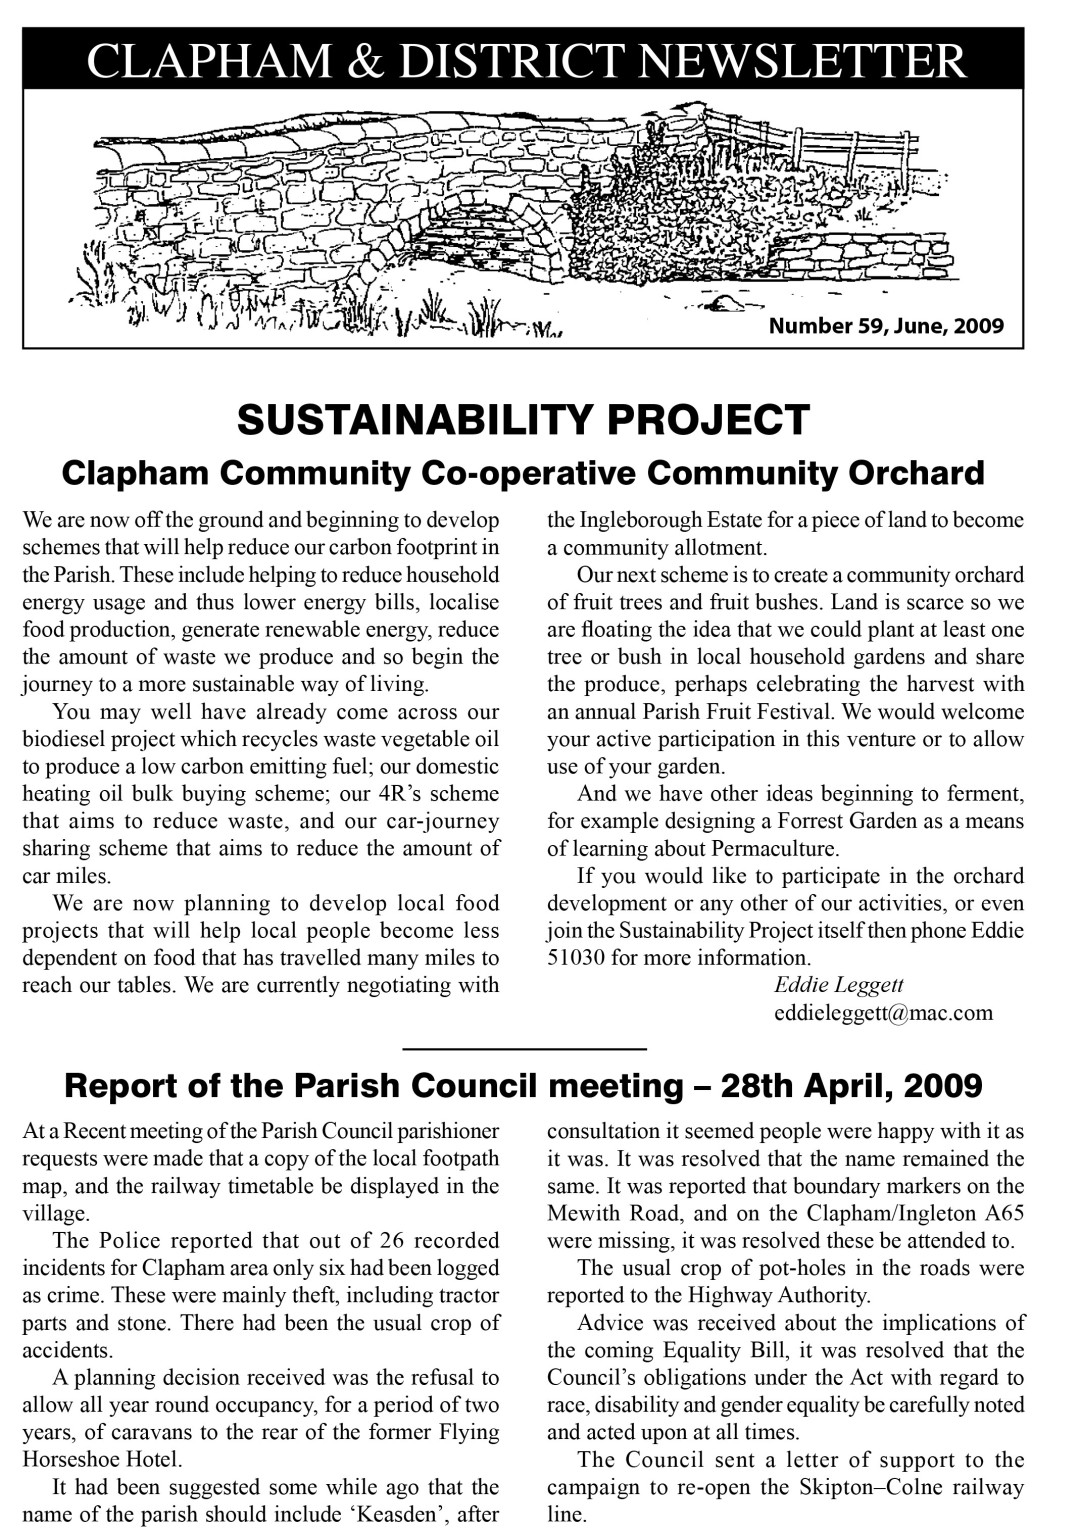 Newsletter_No59_June_2009-1